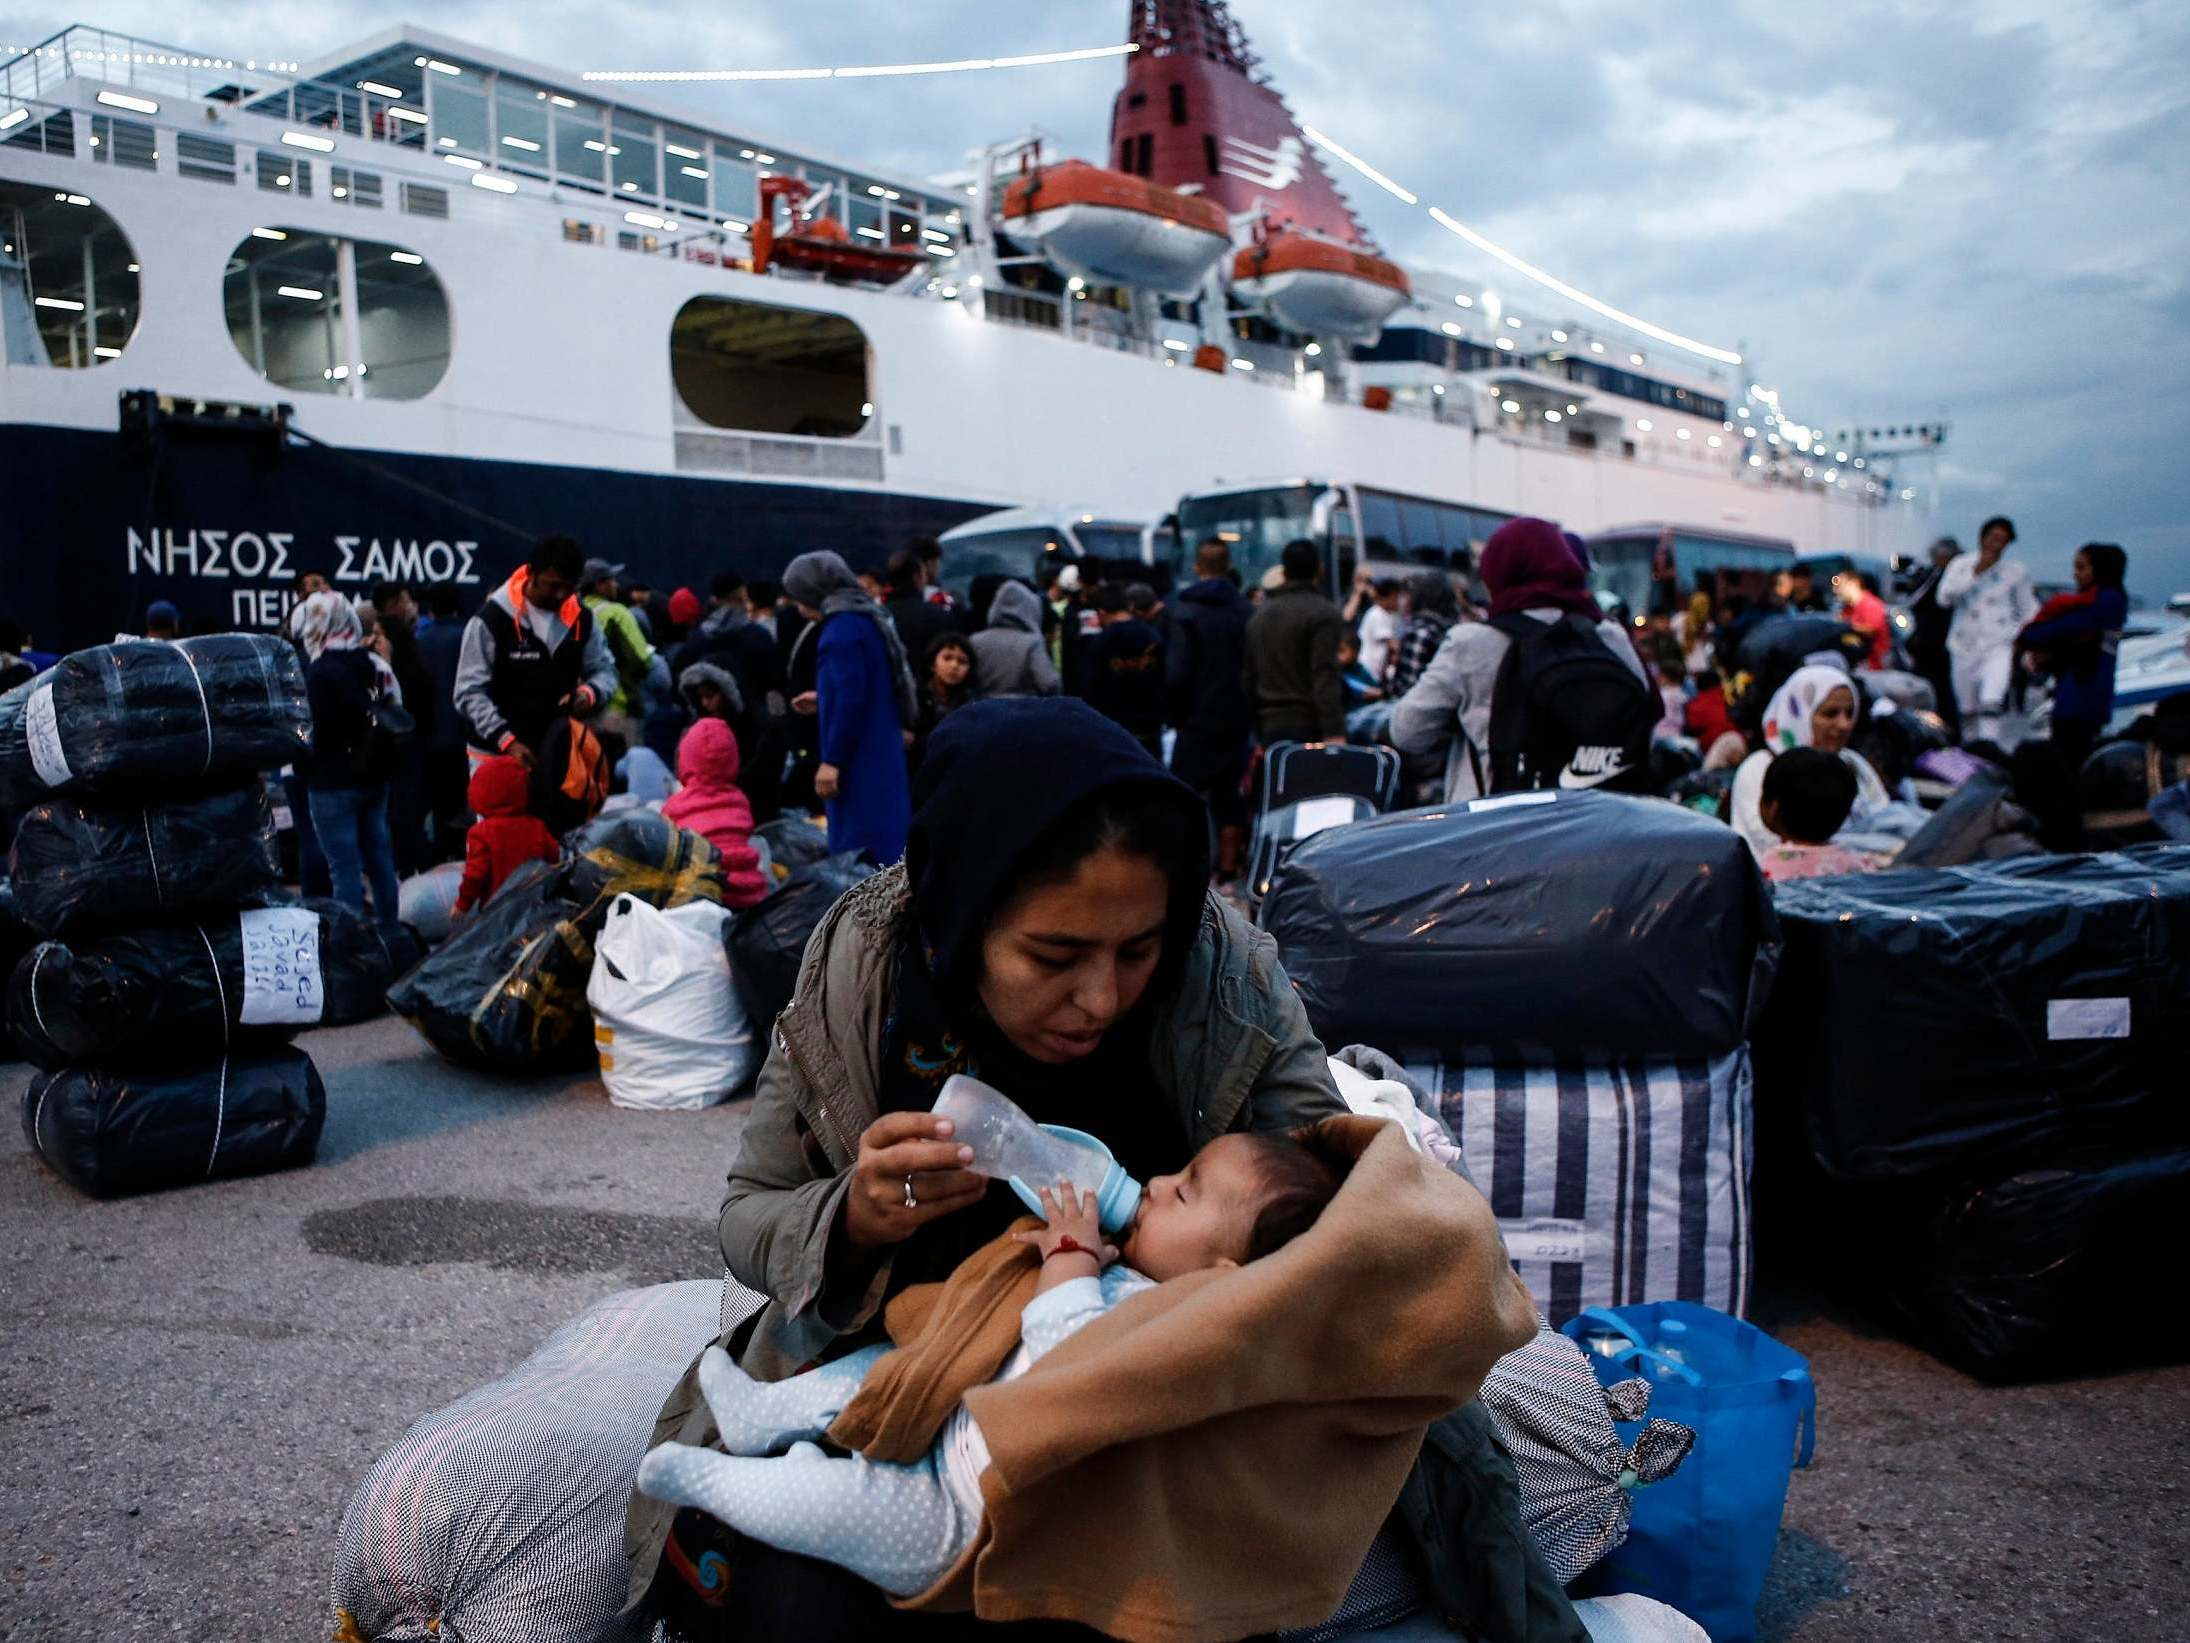 I know the trauma faced by refugees. Now I want business to ease the cruelty they endure from populist leaders